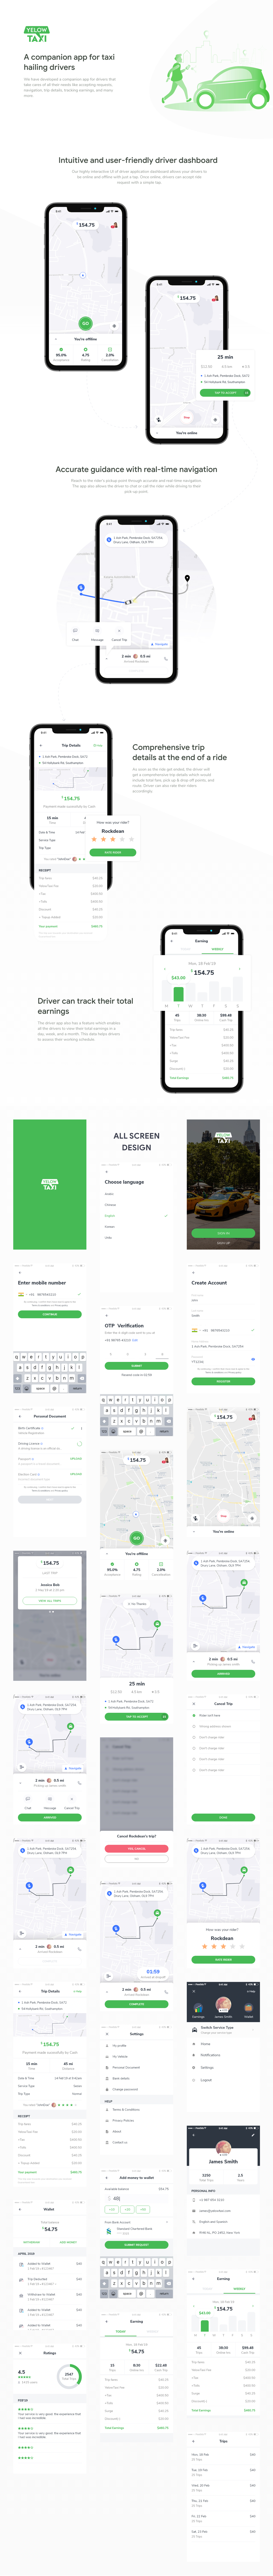 Yelow Taxi Driver App - It's driver app acts as a companion with its user-friendly UI and advanced features like real-time navigation, offline/online mode, view earnings, and many more. Minimal and clean app design, 50+ screens for you to get started.